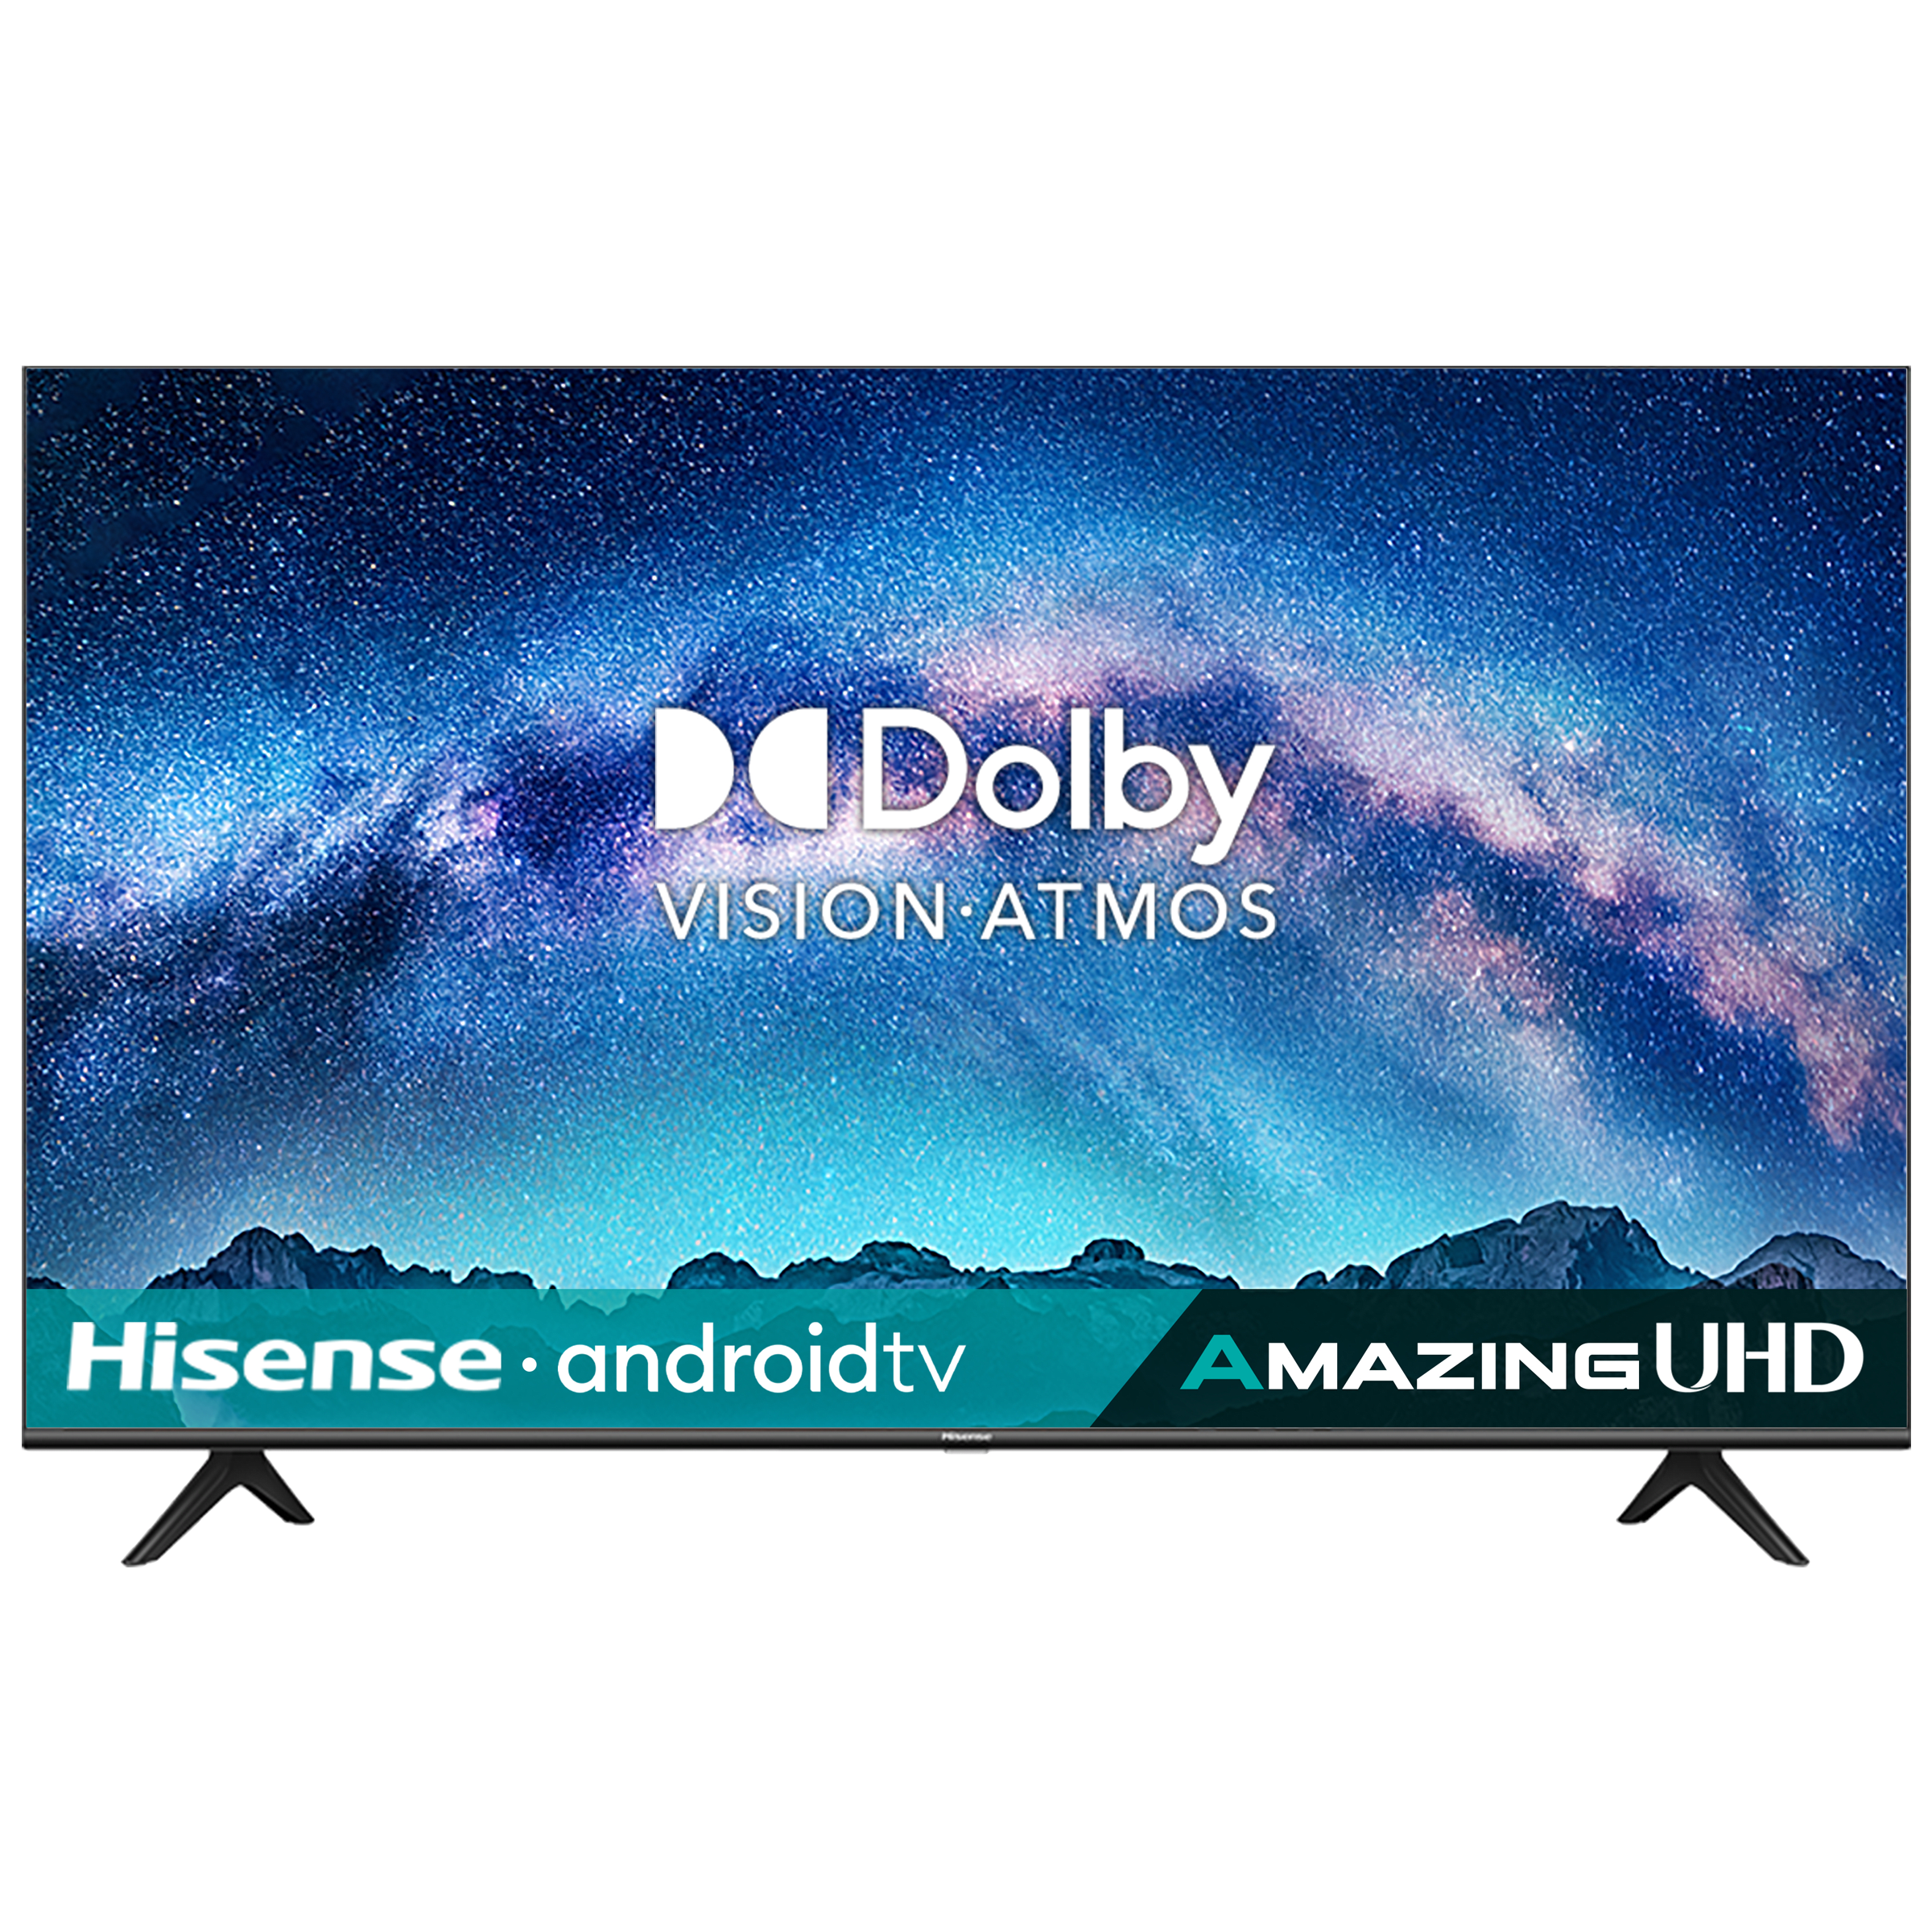 Hisense A71 Series 146cm (58 Inch) Ultra HD 4K LED Android Smart TV (3 Years Warranty, Built-in Chromecast, 58A71F, Black)